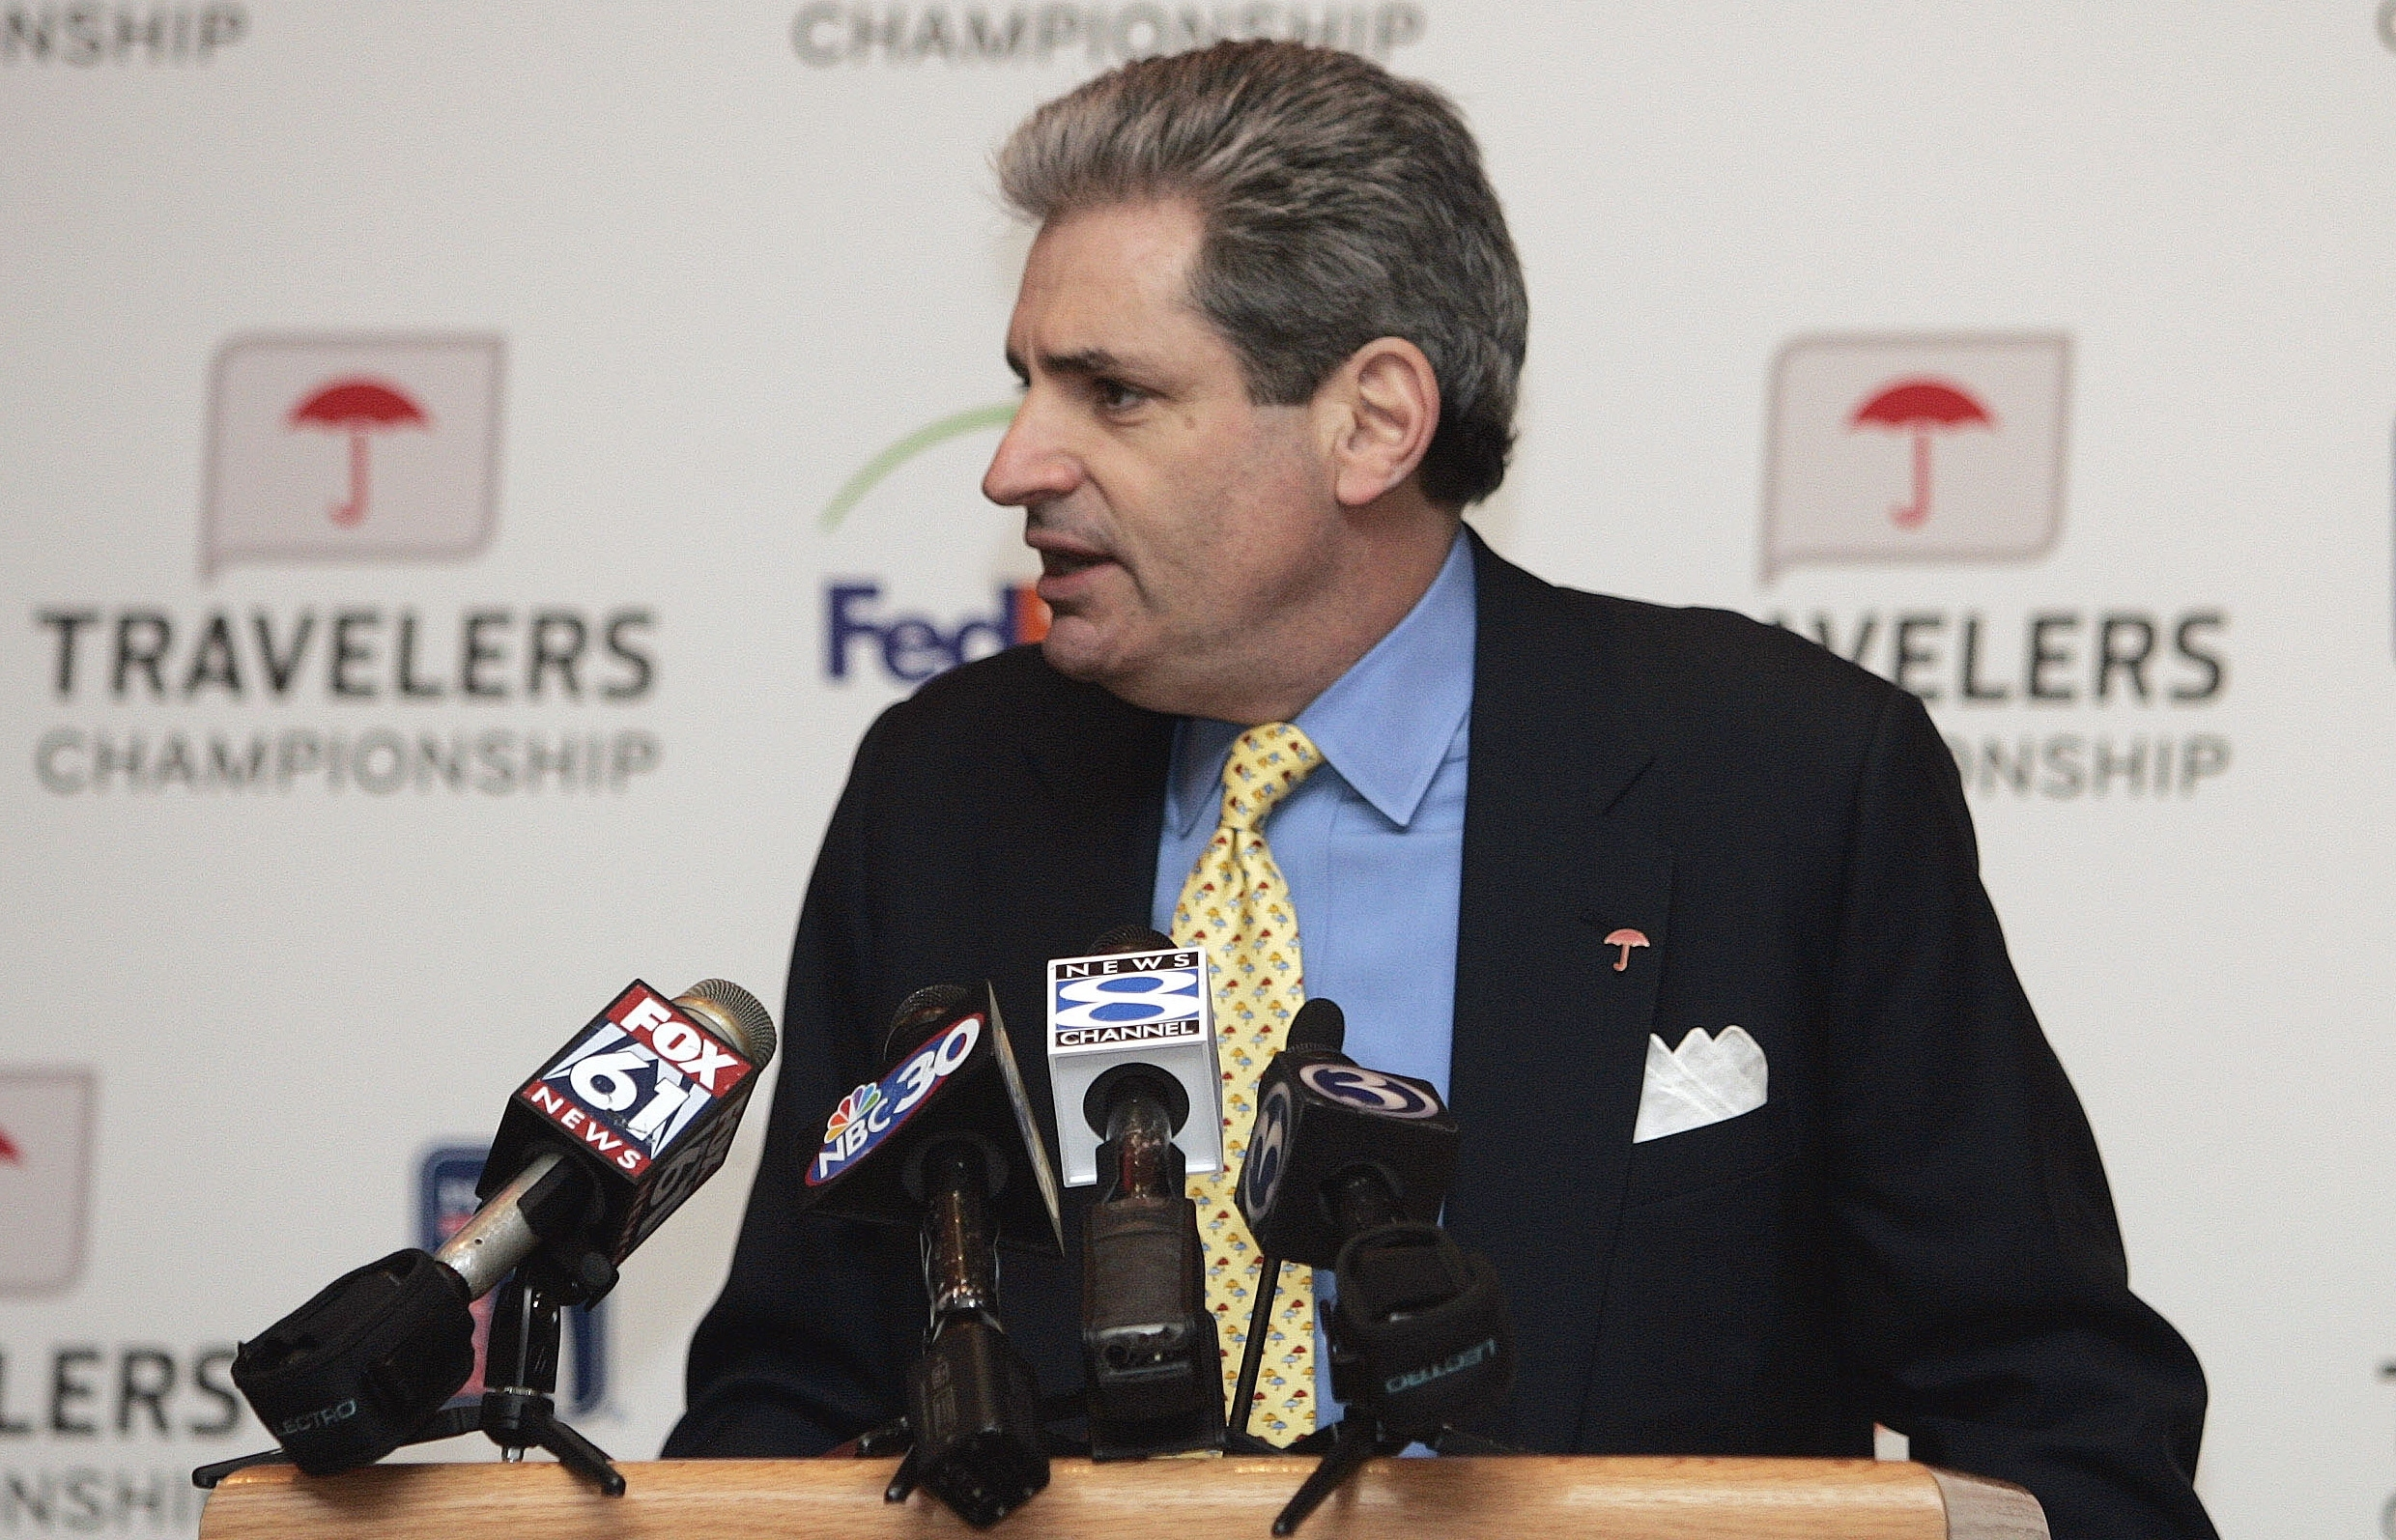 FILE - In this Feb. 13, 2009 file photo, Travelers chairman and CEO Jay Fishman speaks at a news conference in Hartford, Conn. A Connecticut medical center that specializes in the treatment and research of ALS has become the main beneficiary of The Travel